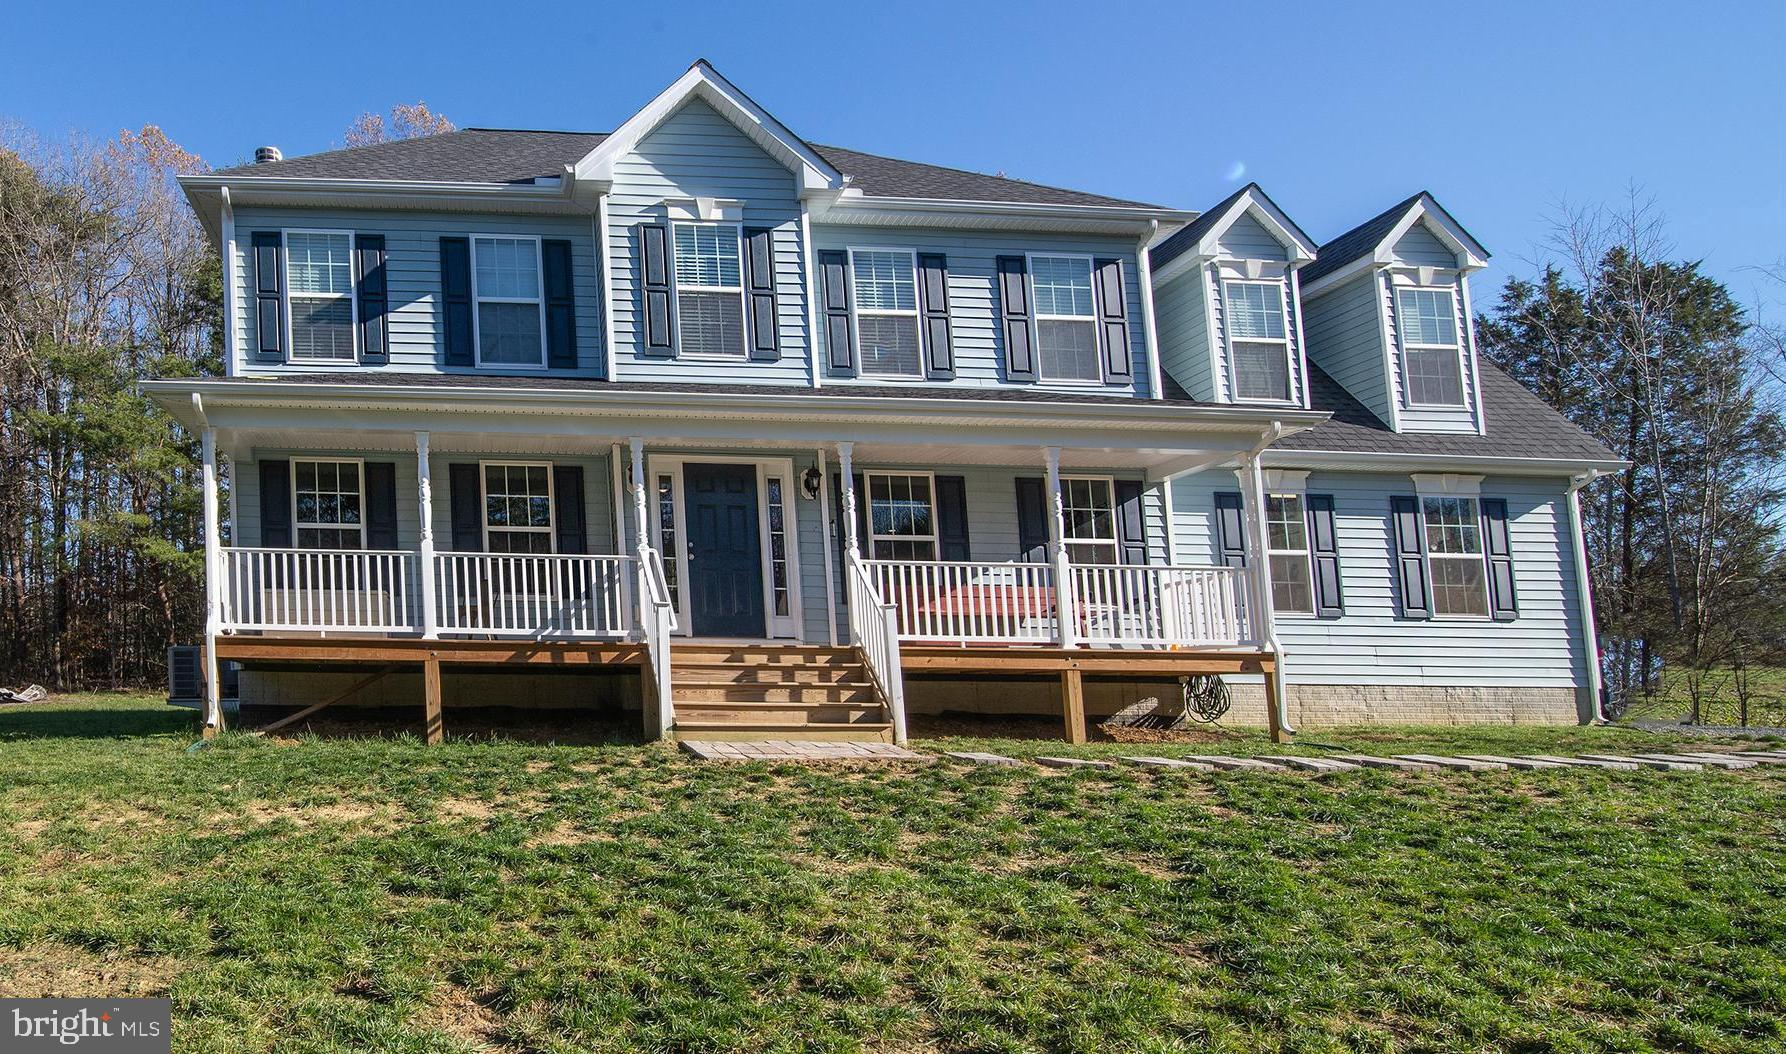 2736 Warrenton Rd, Fredericksburg, VA, 22406